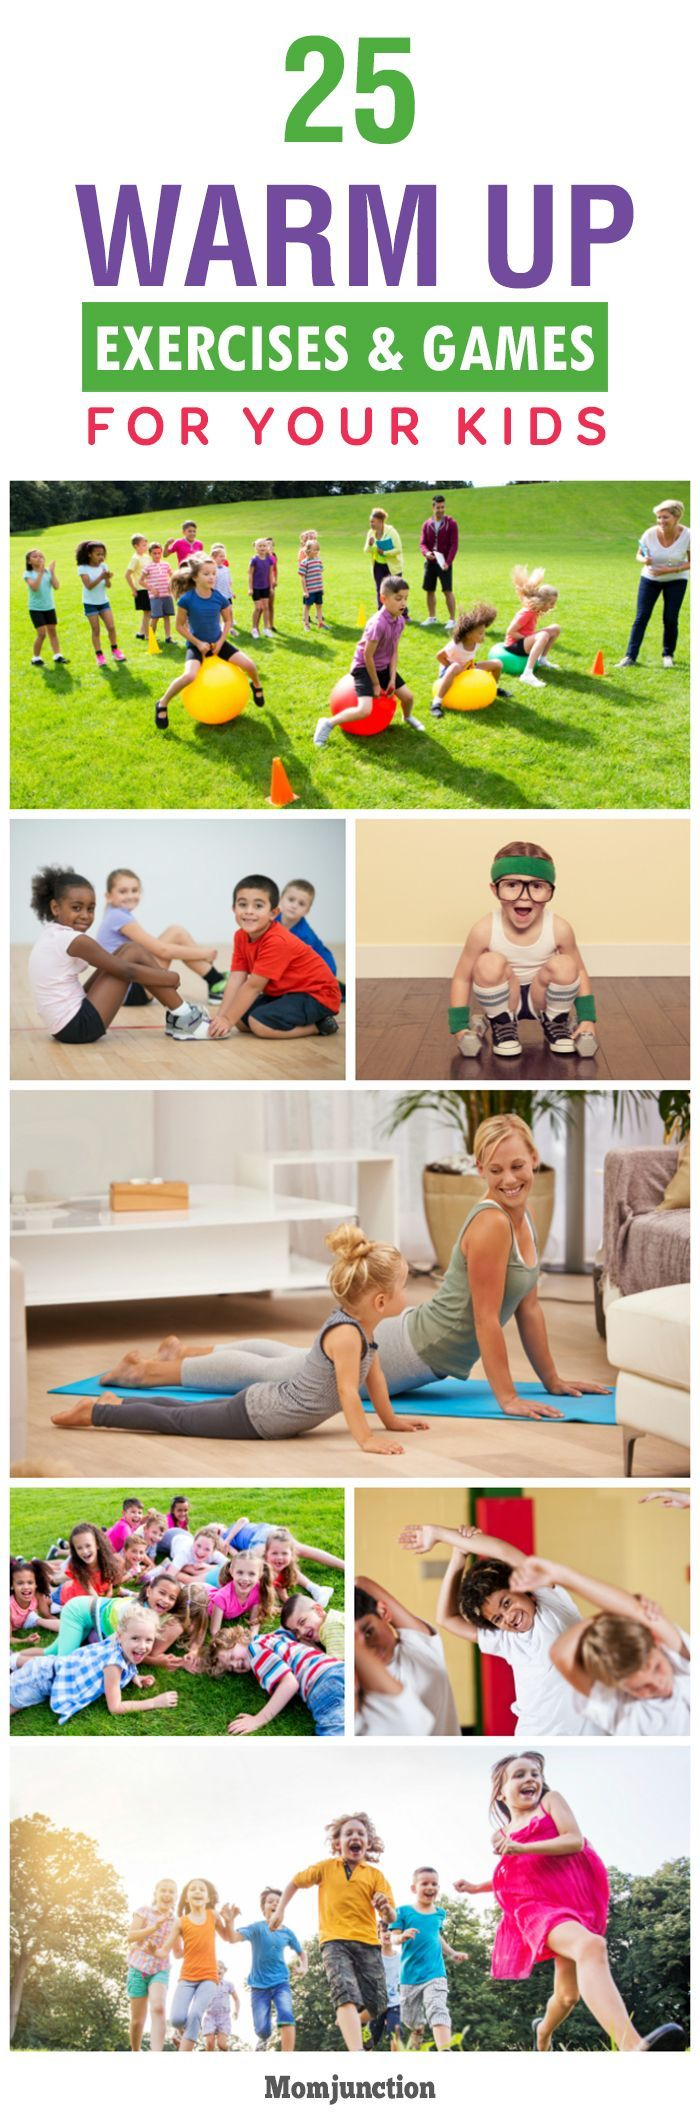 25 Fun Warm Up Exercises And Games For Kids | Exercises ...